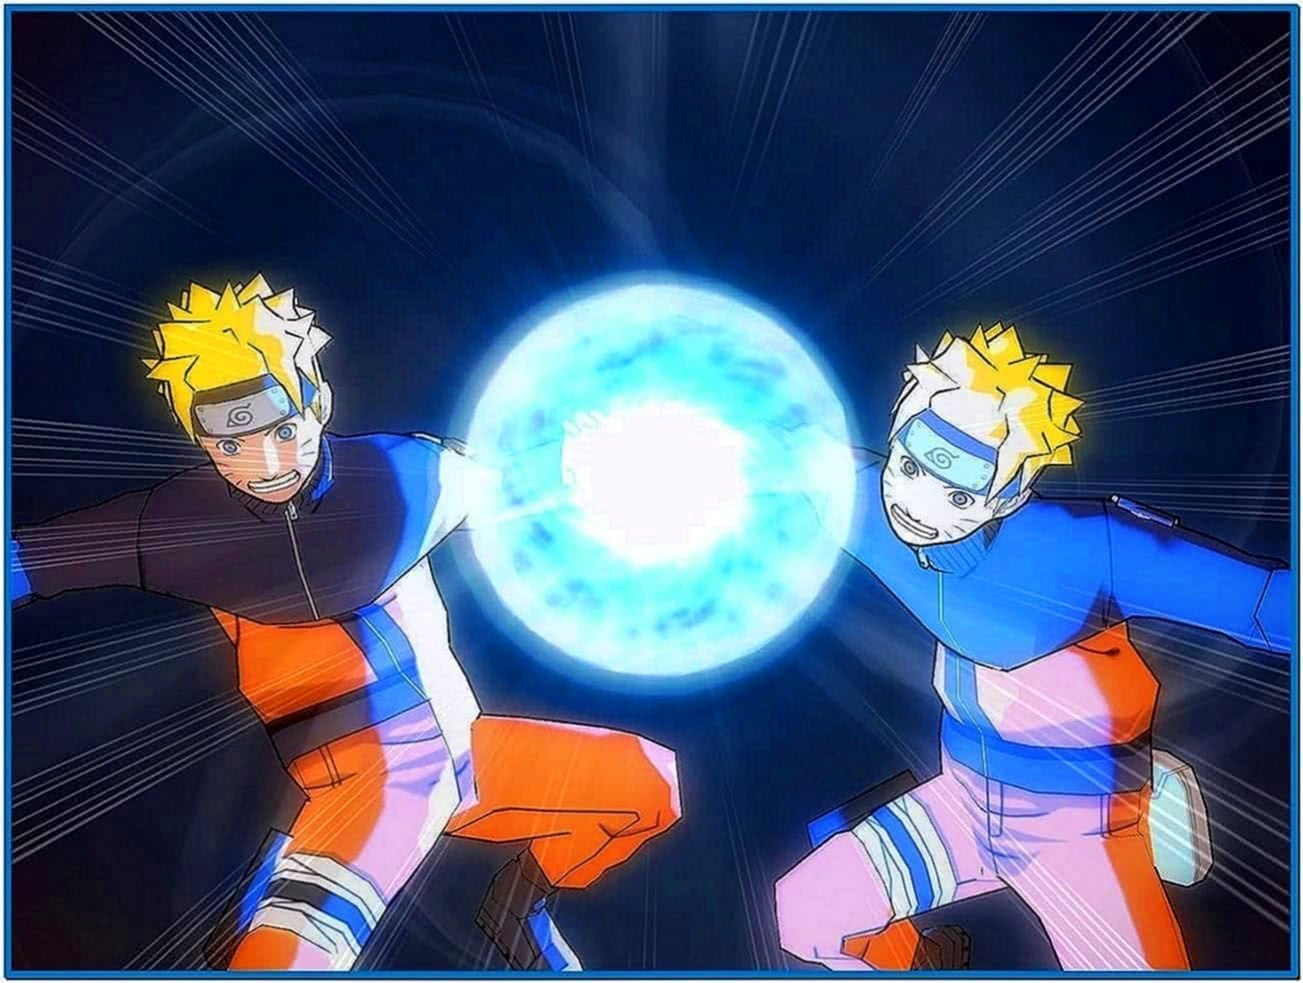 Naruto Shippuden Animated Screensaver